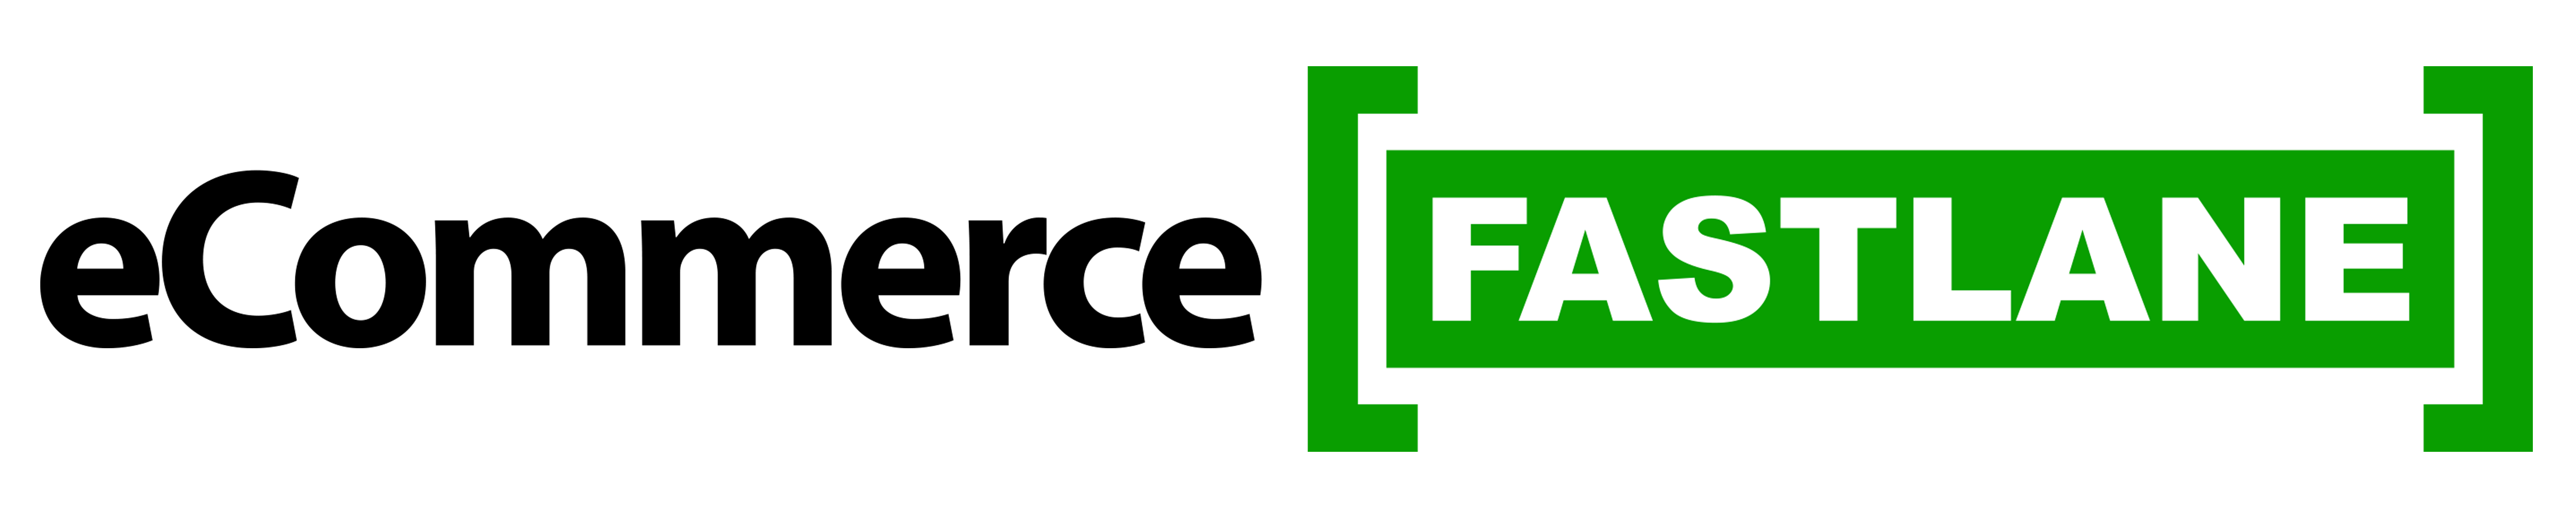 The eCommerce Fastlane website logo is shown in black text against a white background and white text against a green background.